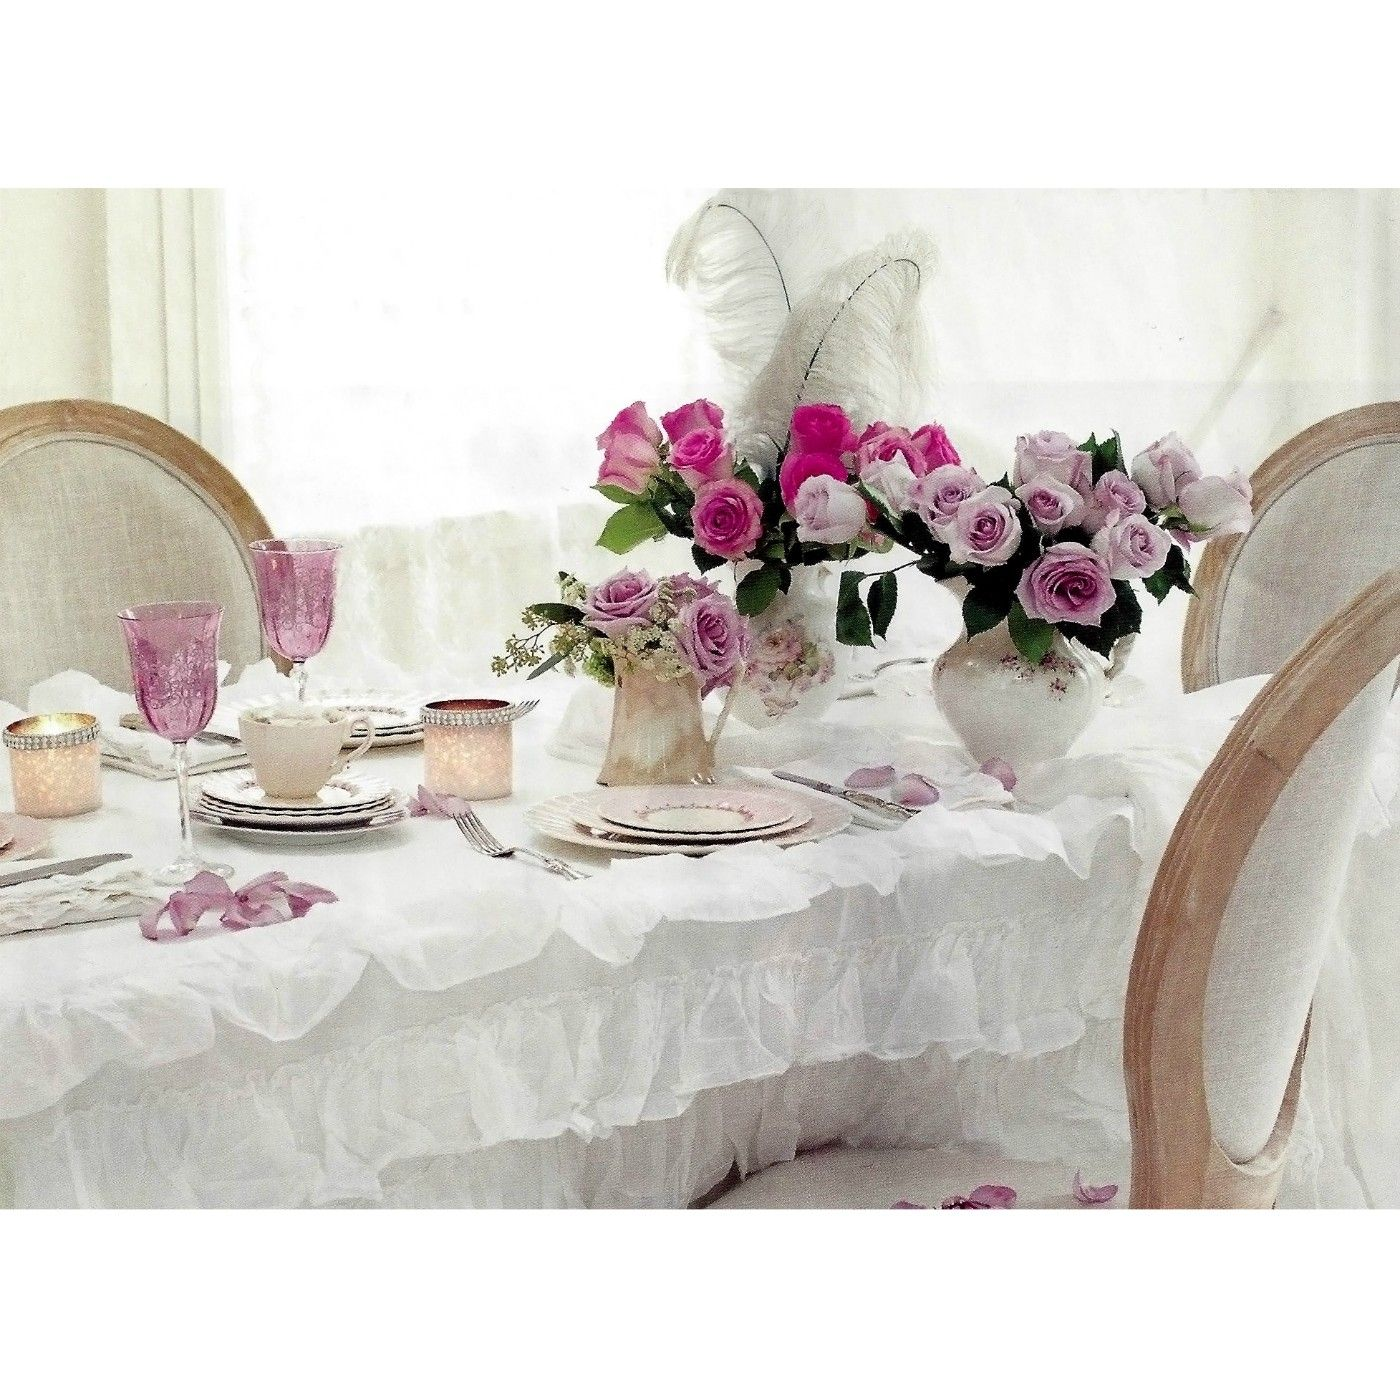 Pom Pom At Home Audrey Cotton White Ruffle Tablecloth #dining #linen